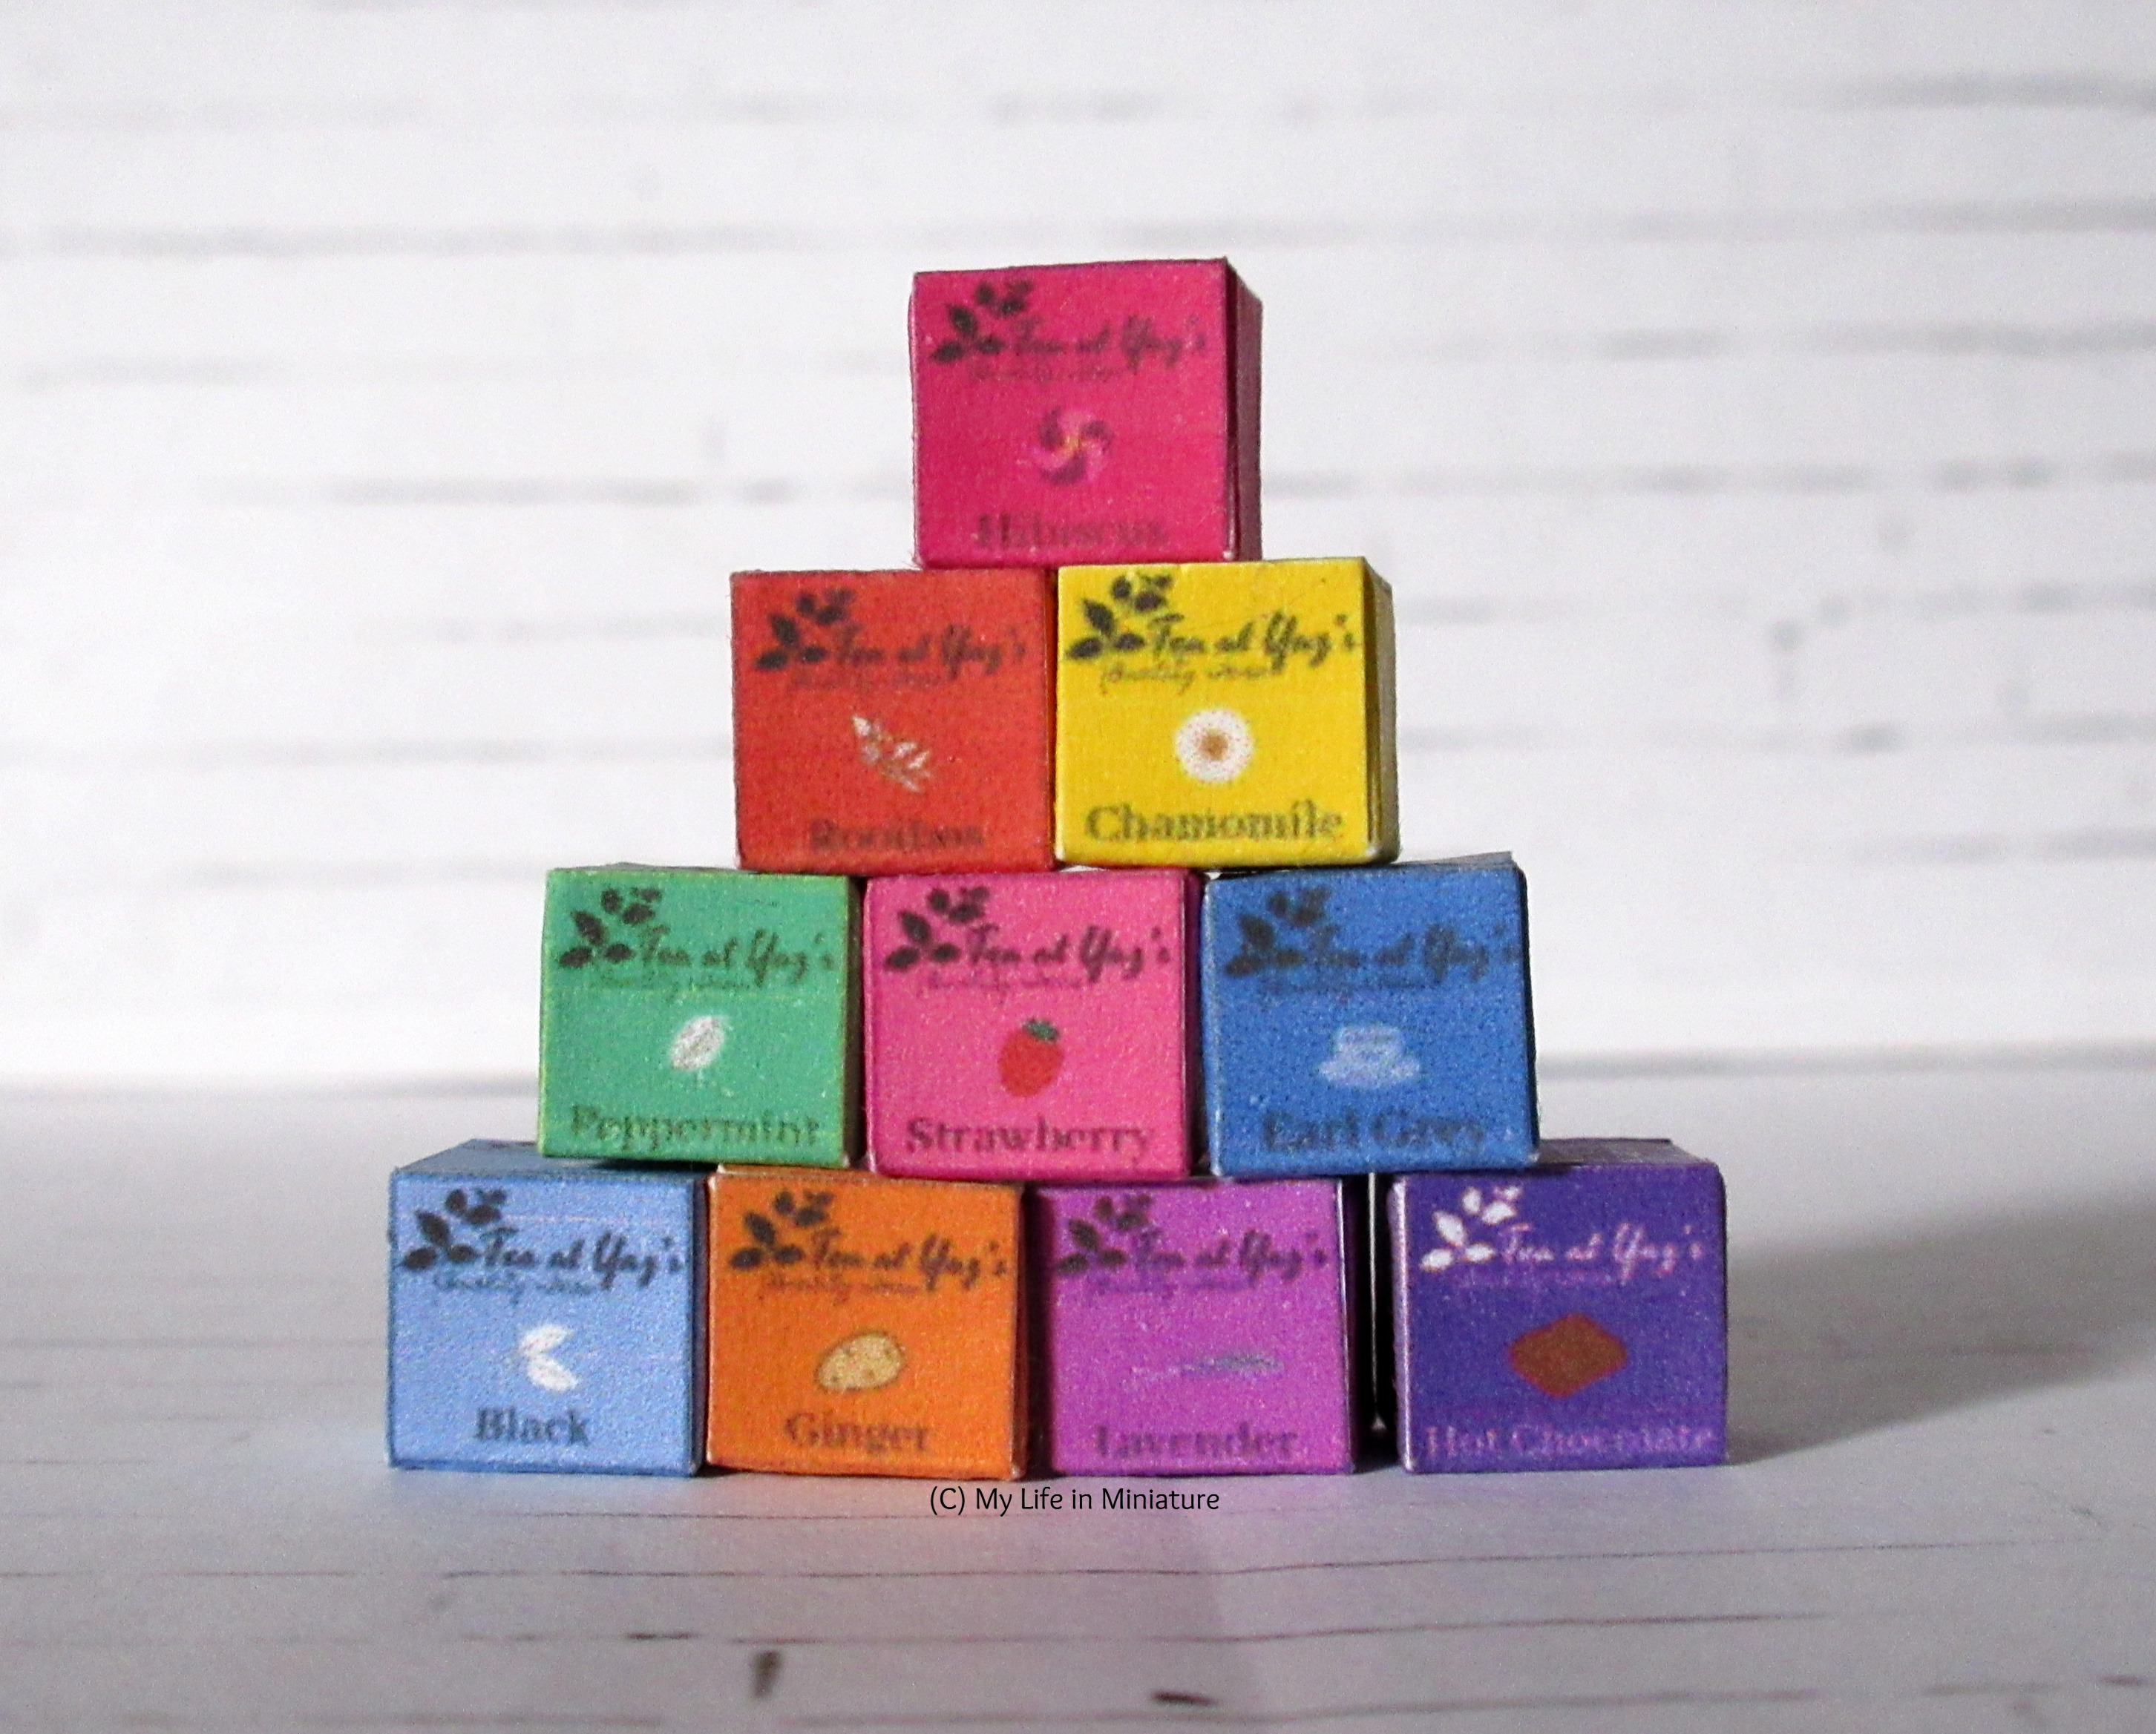 Ten Tea at Yaz's boxes are stacked in a tower against a white brick background. The different types of tea they contain are visible on the front of the boxes (plus one box of hot chocolate in the bottom right).